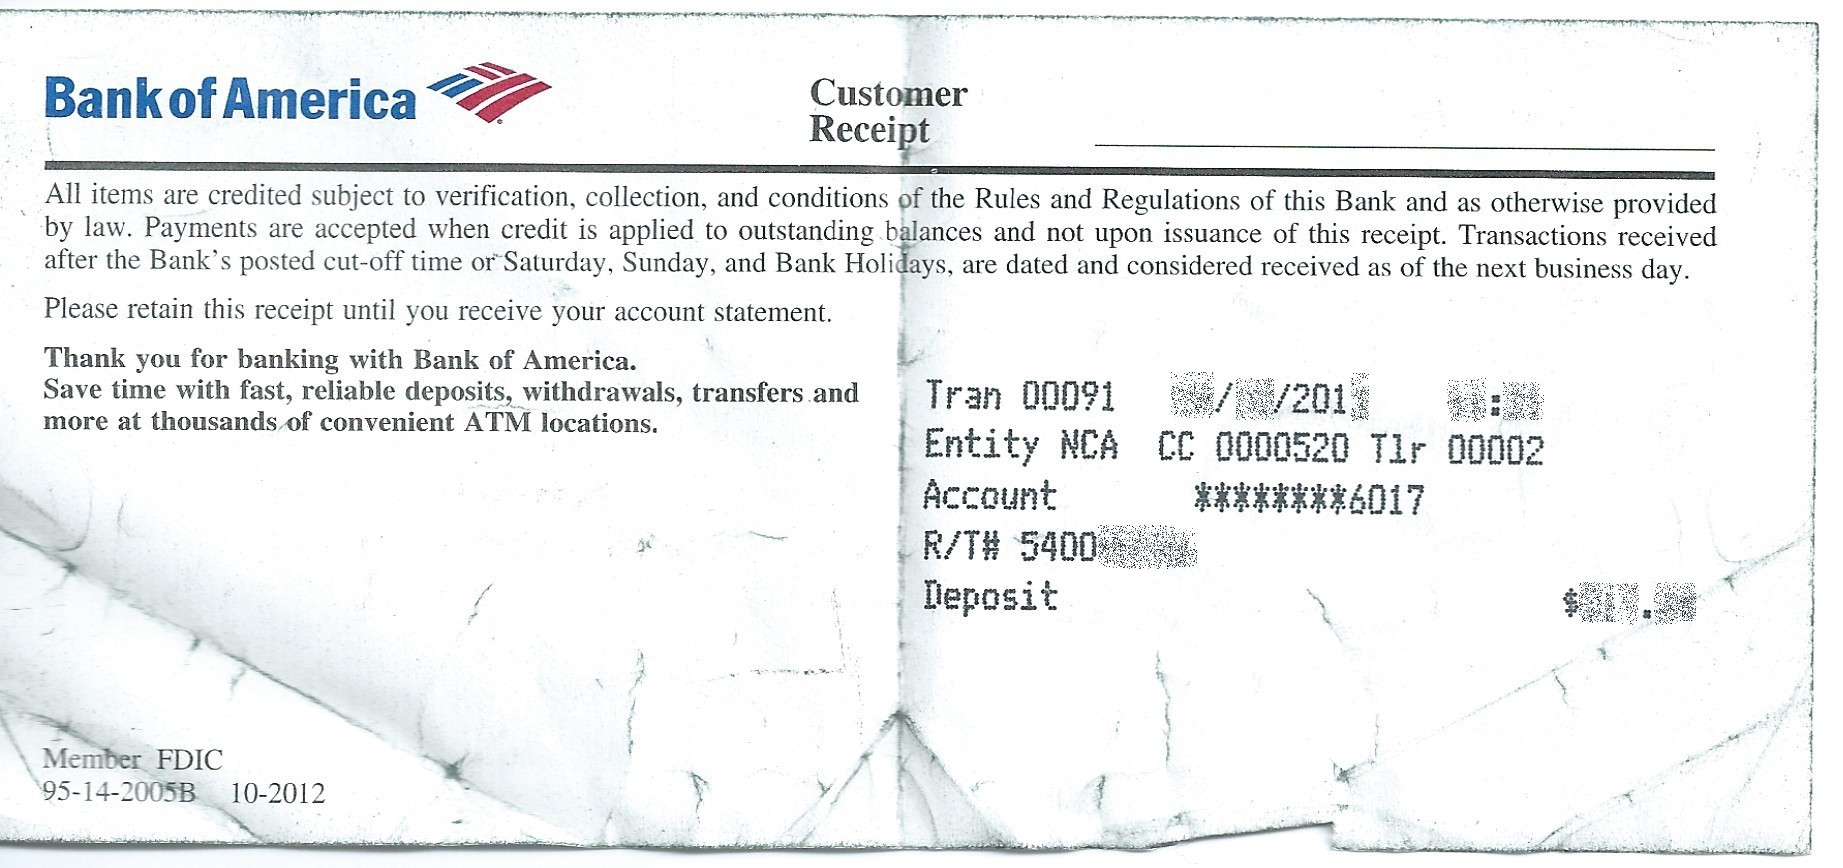 File:Bank of America deposit to LocalTill.jpg